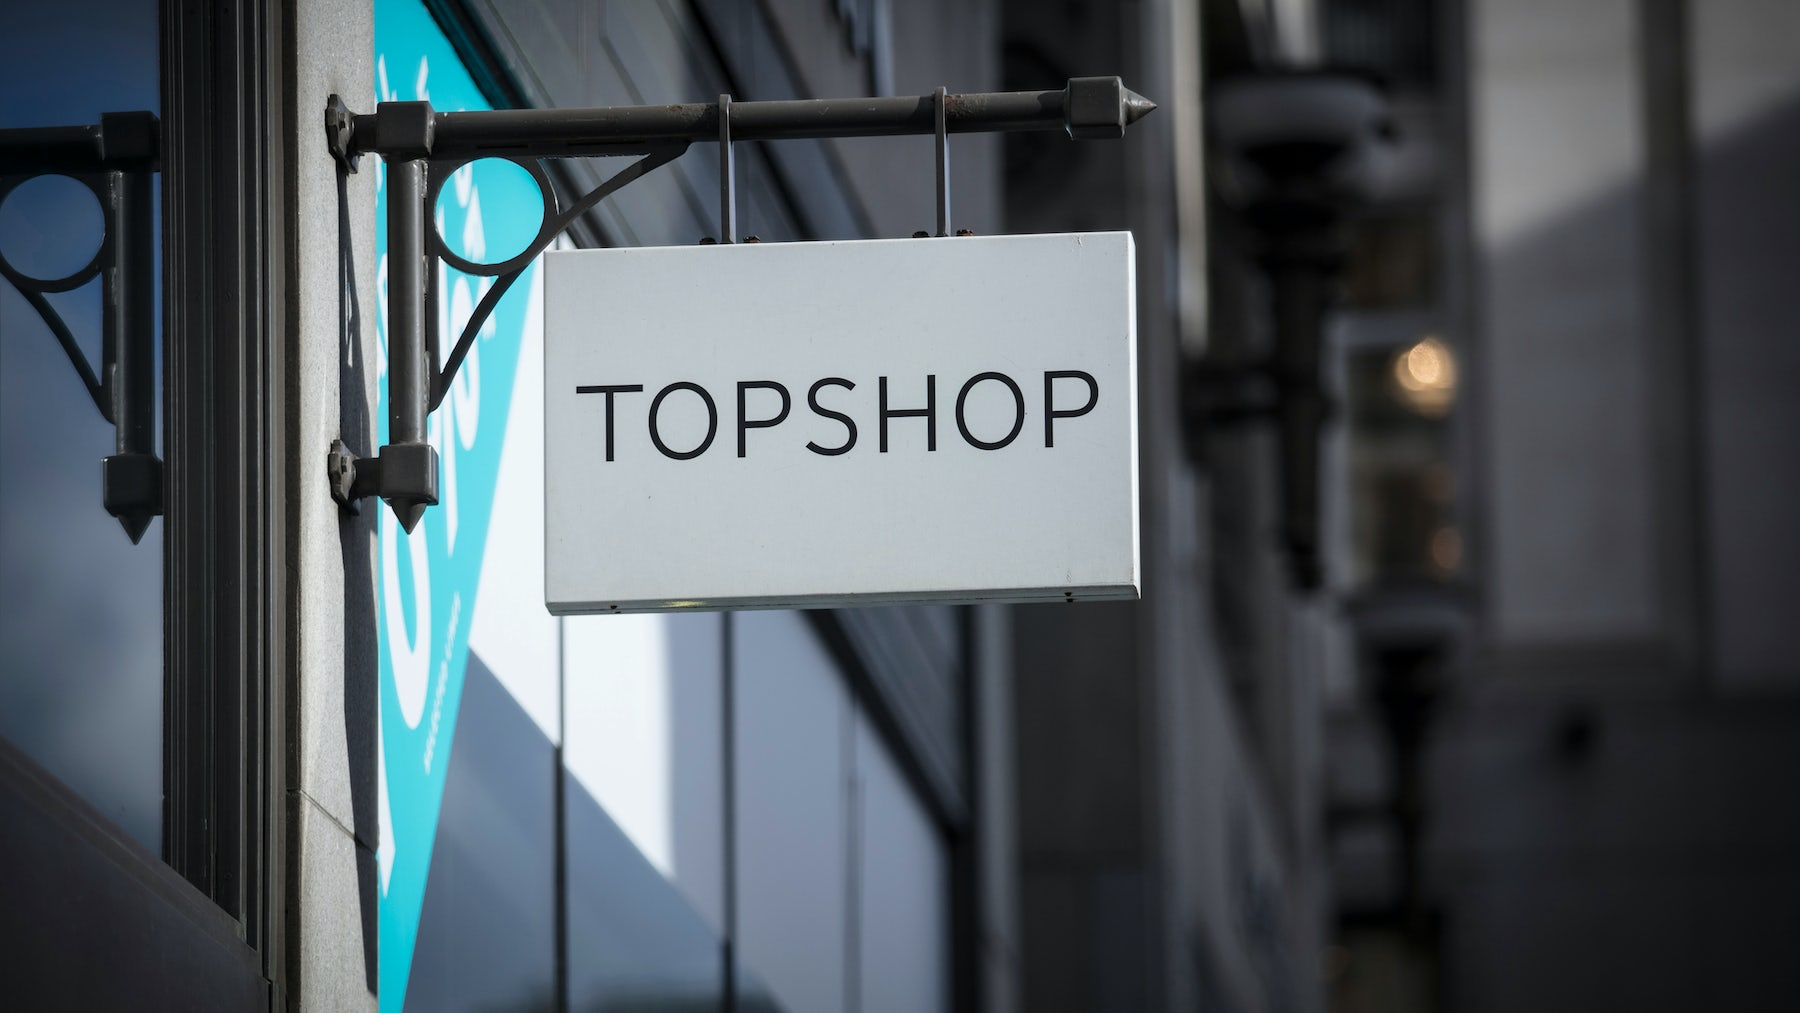 A sign and logo for Topshop store. Shutterstock.